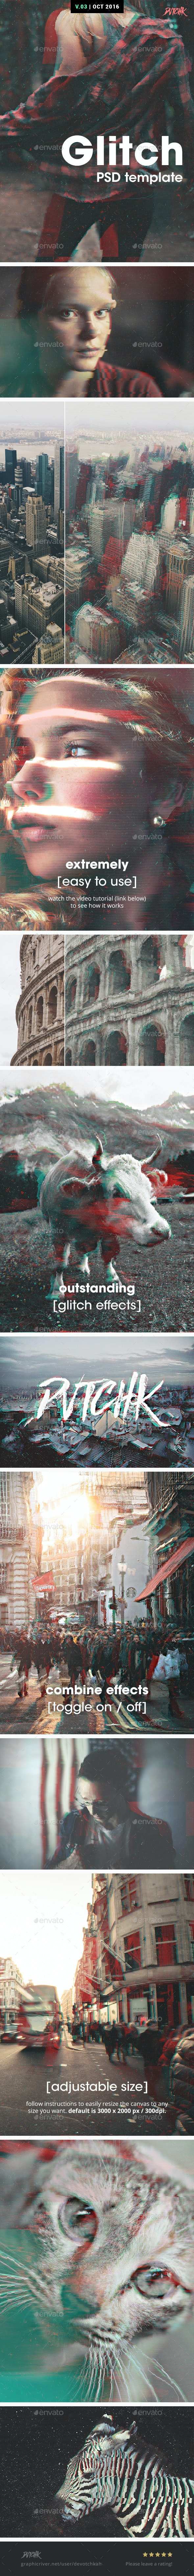 Glitch Photoshop Photo Template - Tech / Futuristic Photo Templates